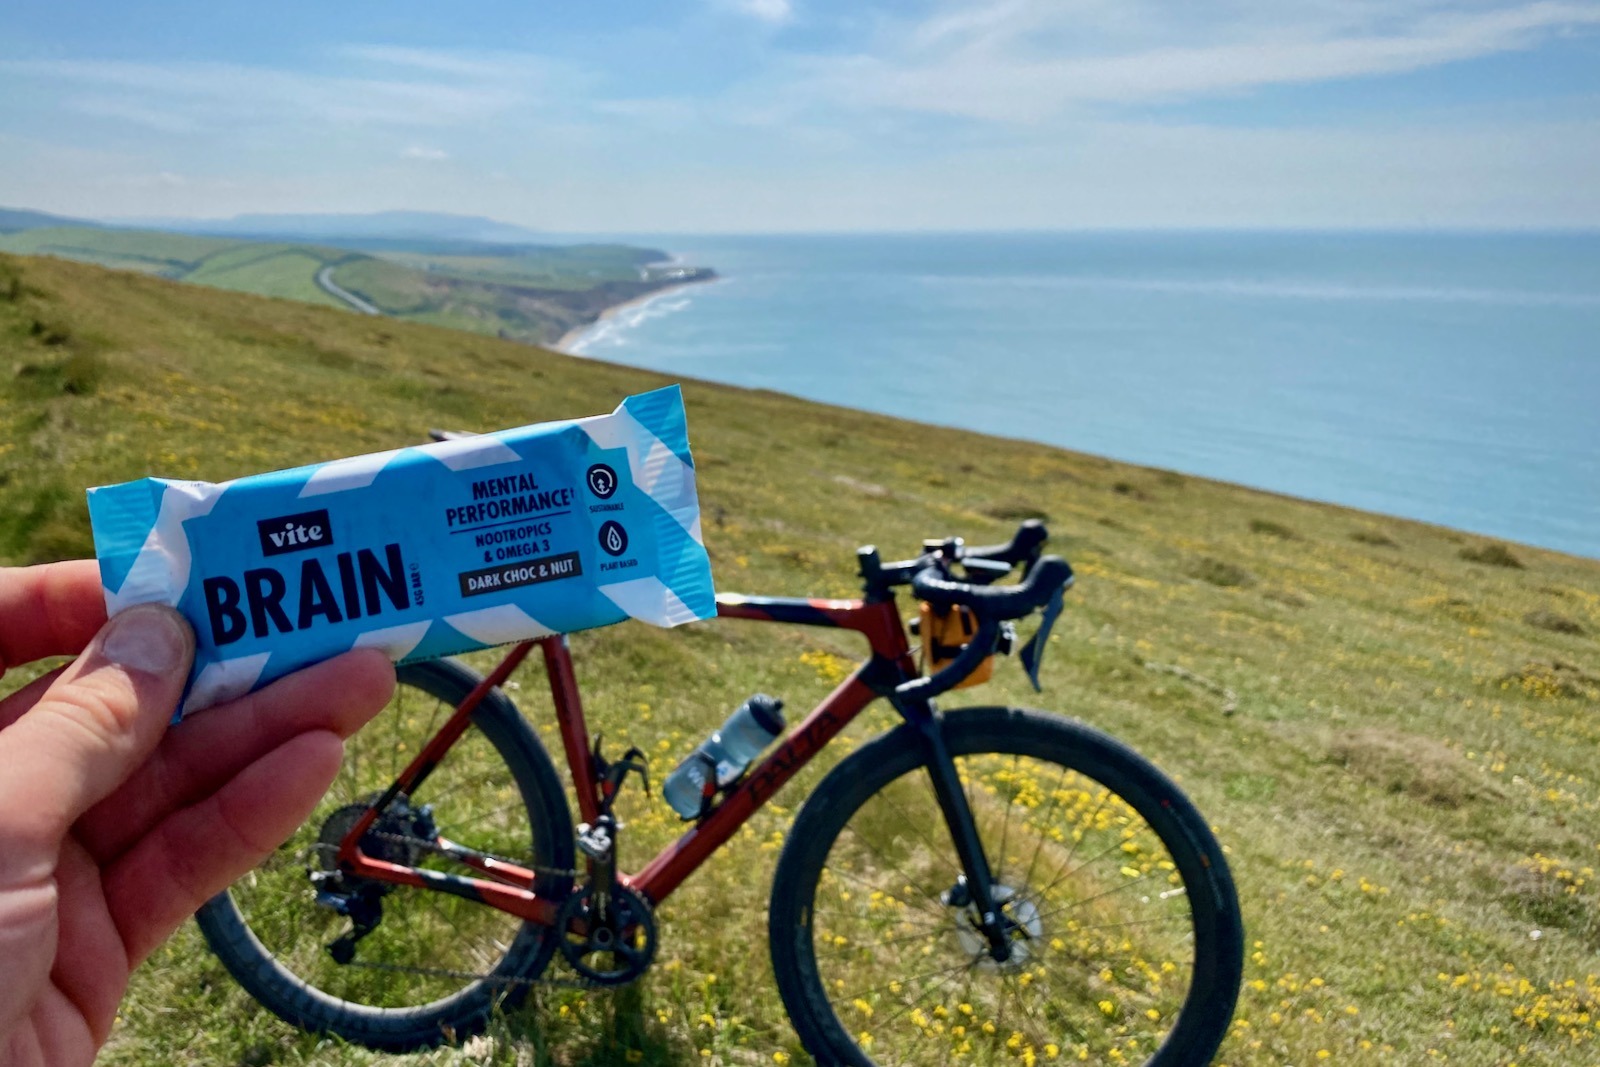 Nutrition Review – Vite Brain Bar Snack Bars with Omega-3 and Nootropics